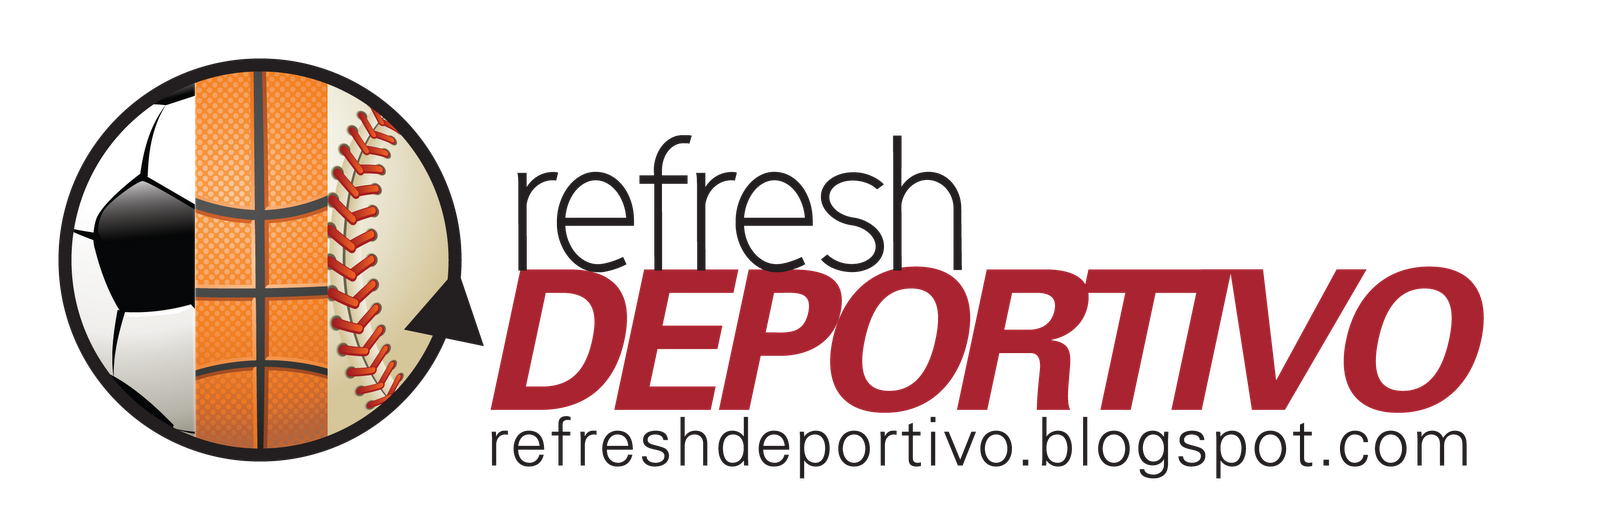 Refresh Deportivo